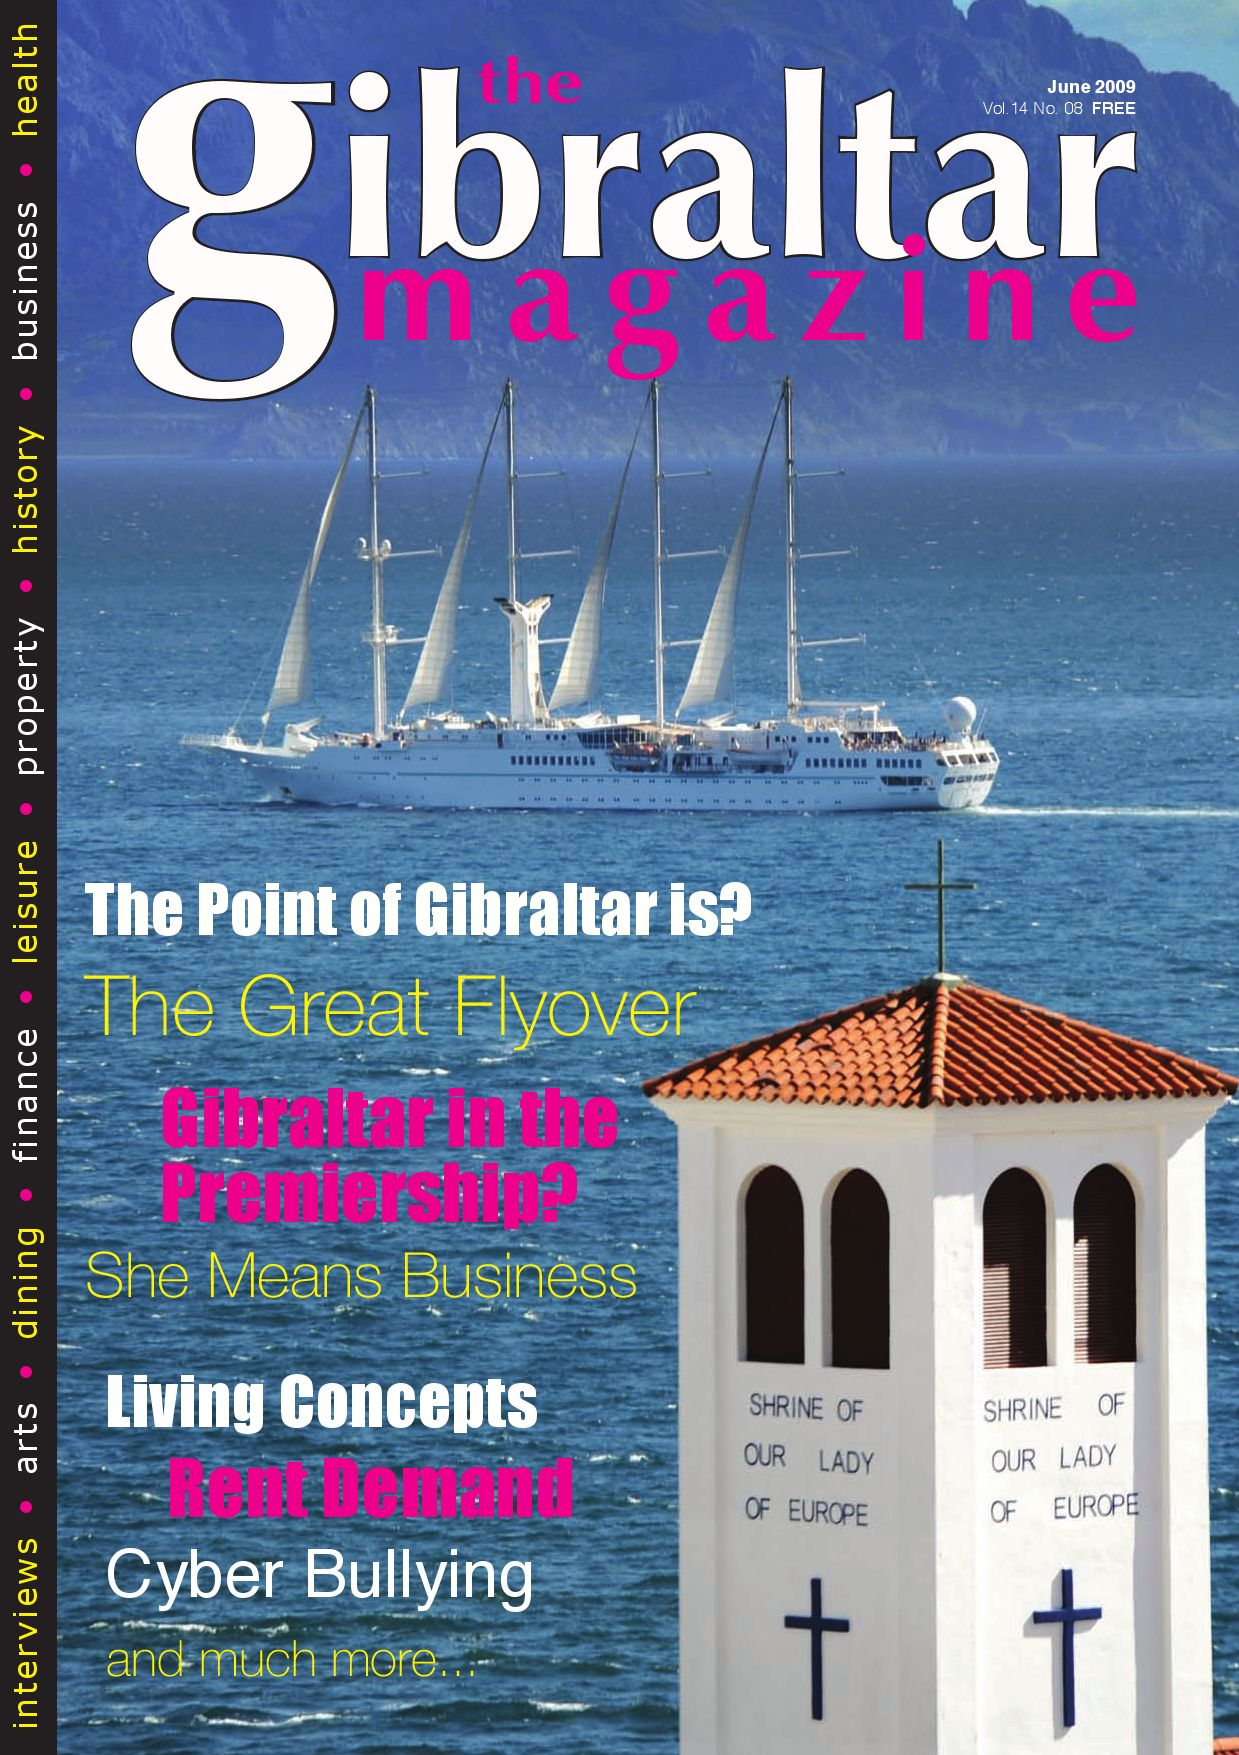 The Gibraltar Magazine June 09 — online edition by Rock Publishing ...